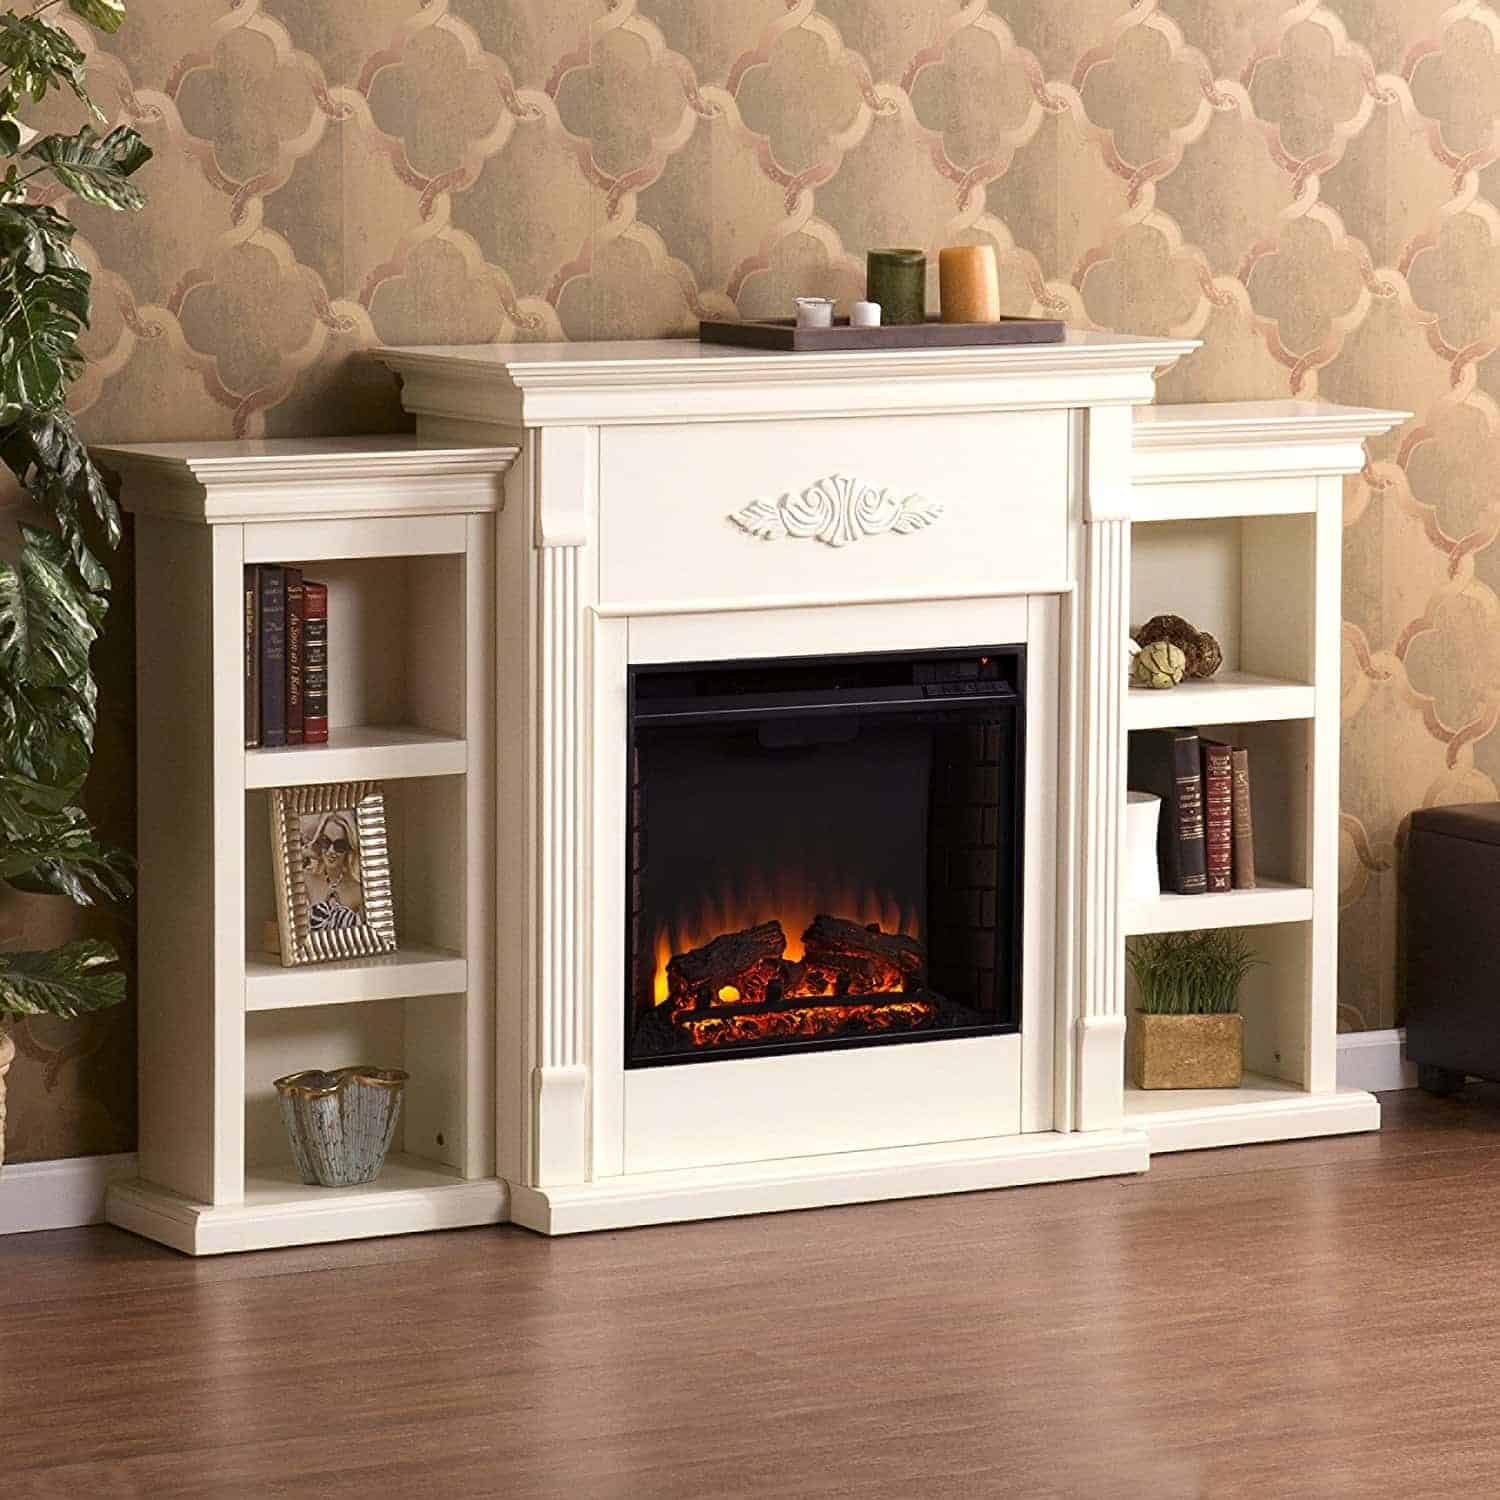 Southern Enterprises Tennyson Electric Fireplace w/ Bookcases